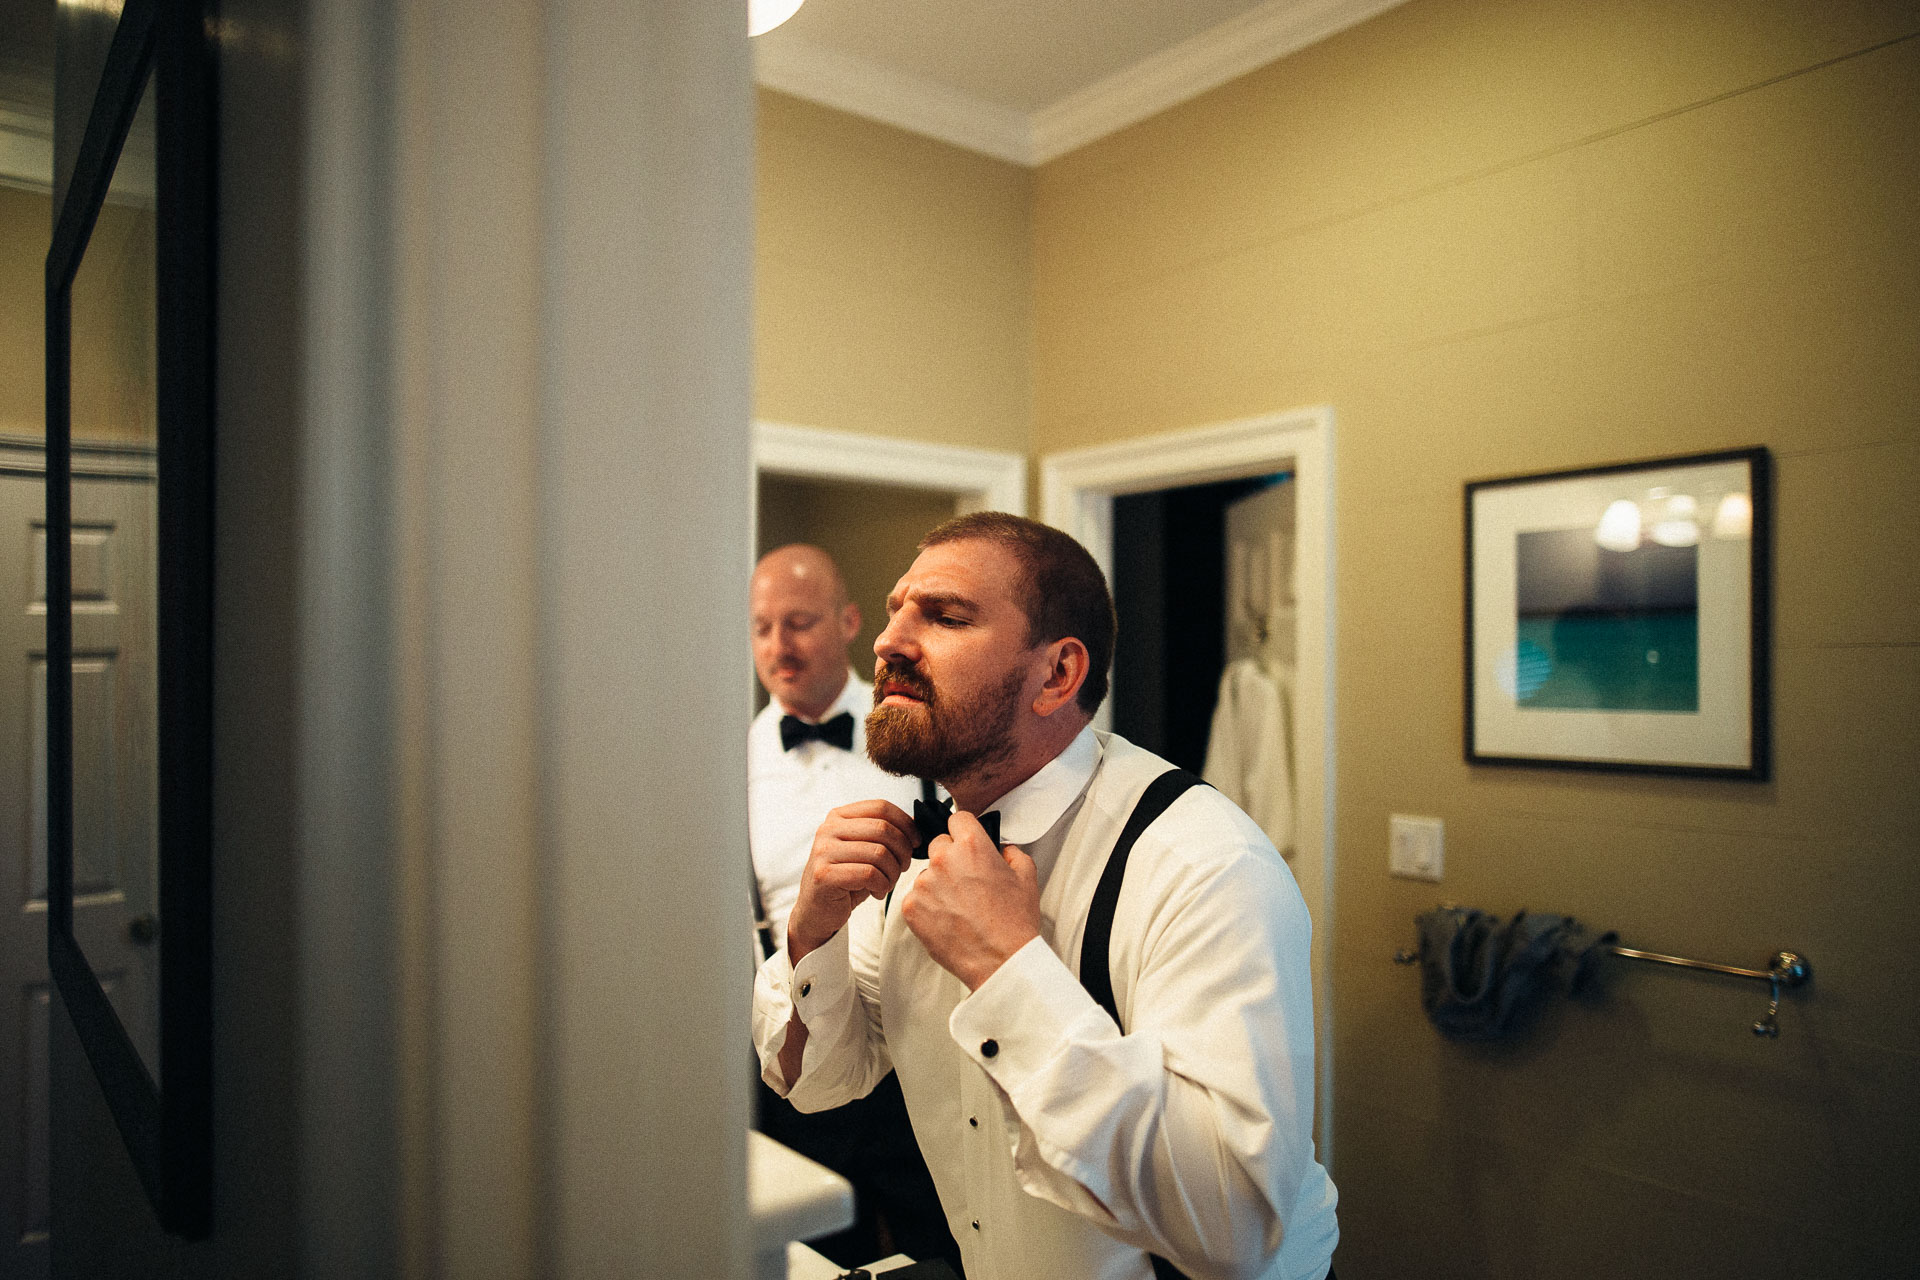 Shawna_Josh_Wedding_Easton_Maryland_JeanLaurentGaudy_038